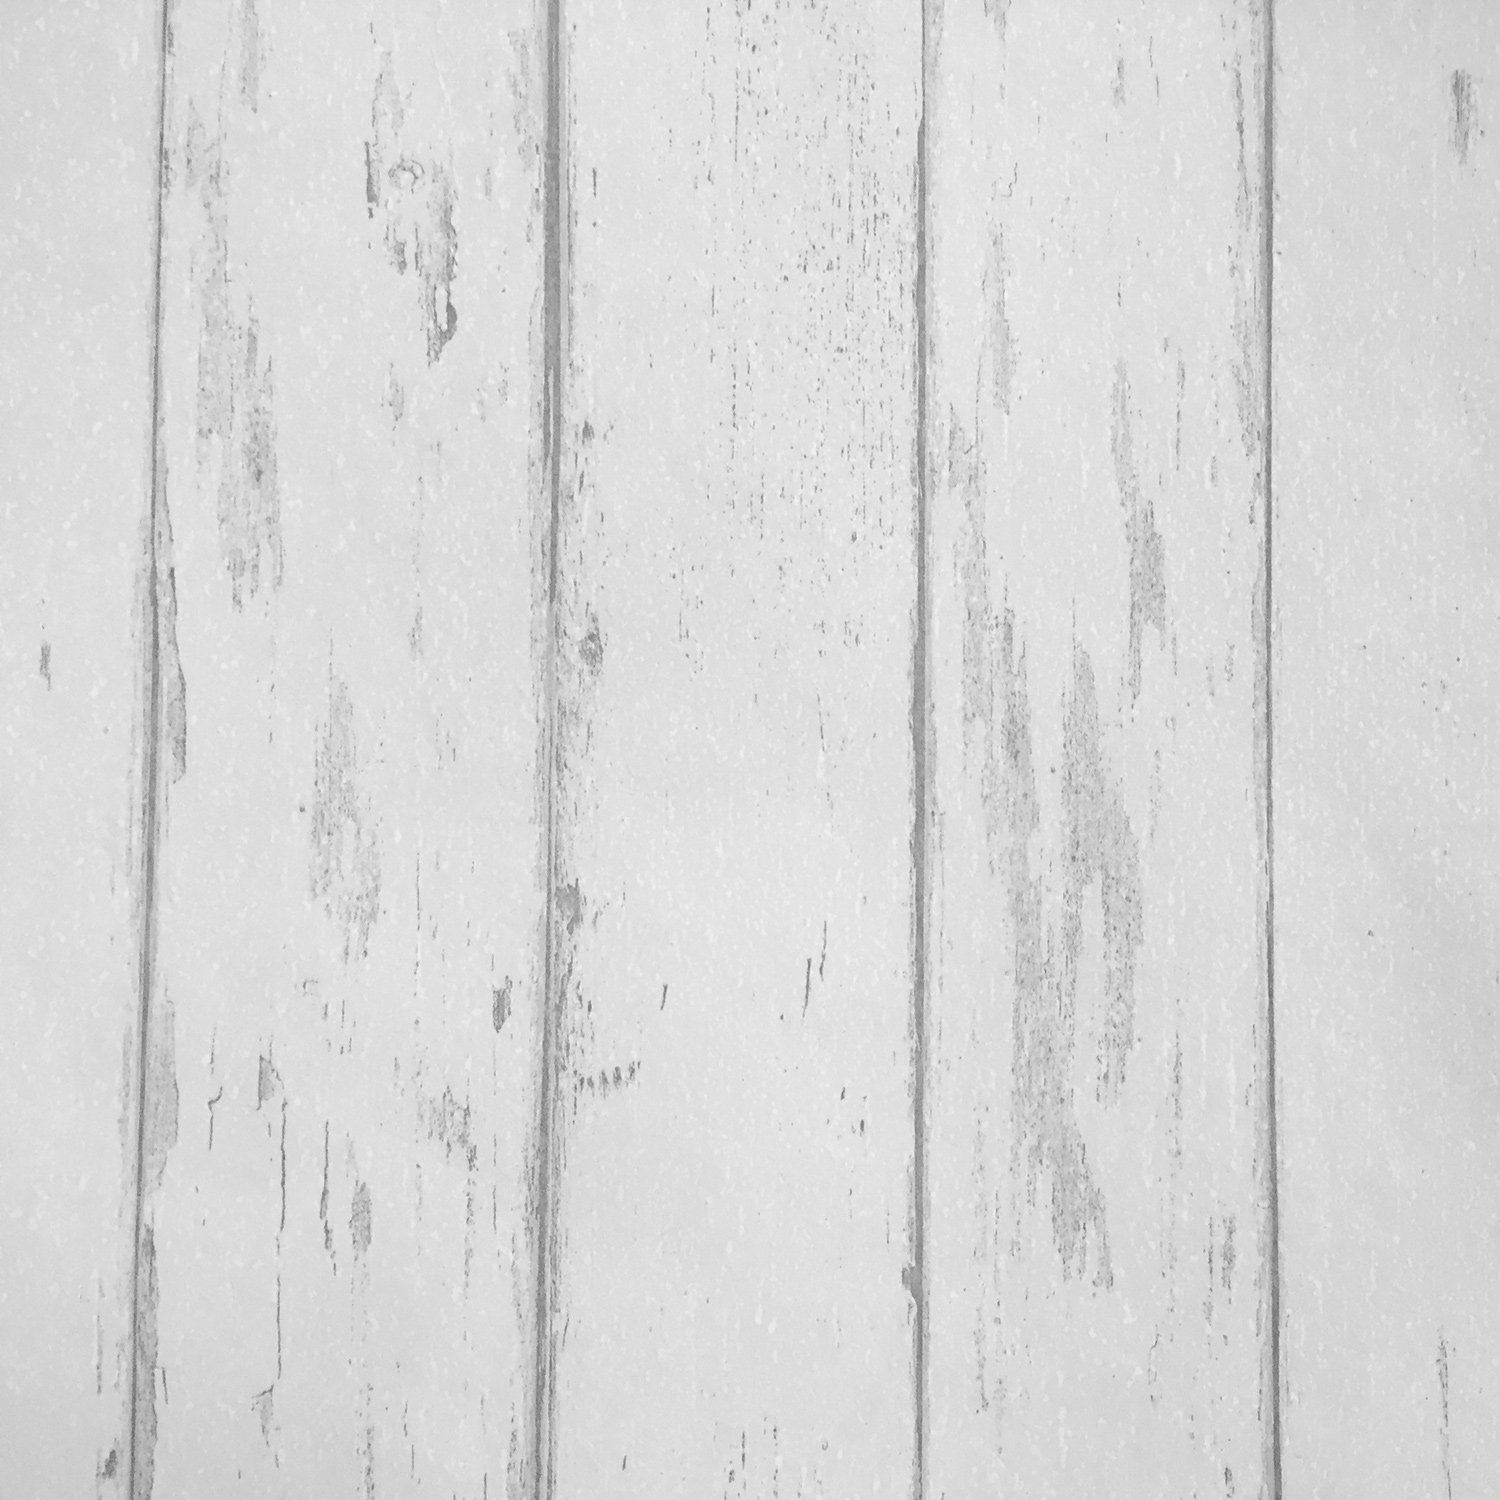 Country Rustic Wood Plank Wallpaper f White Distressed Wood Panel